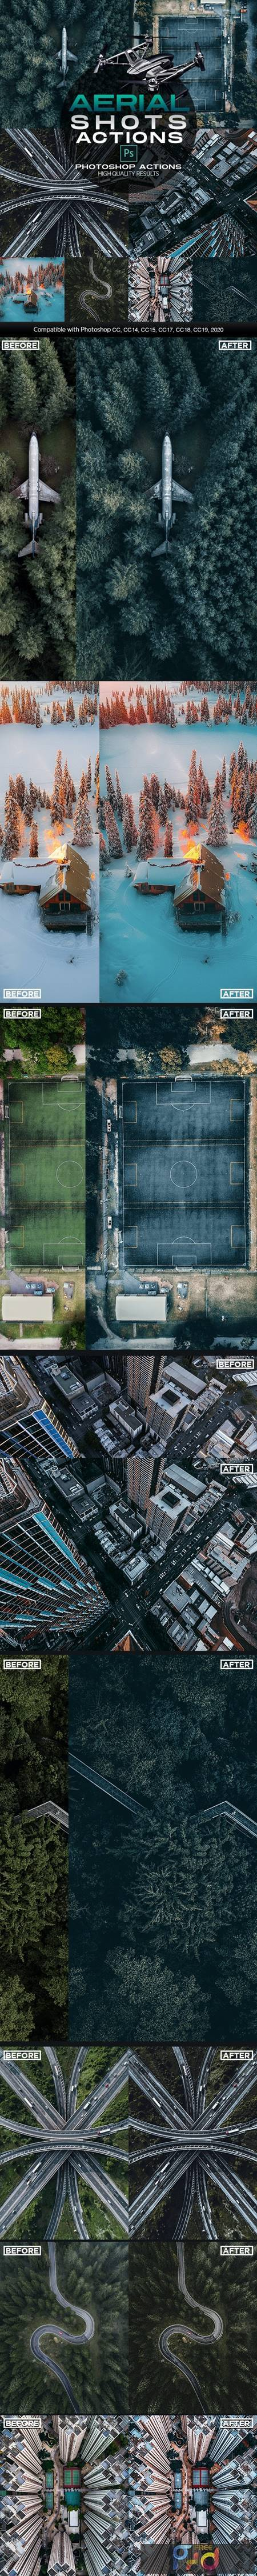 Aerial Shots Photoshop Actions Drone Shots Effects 26623763 1